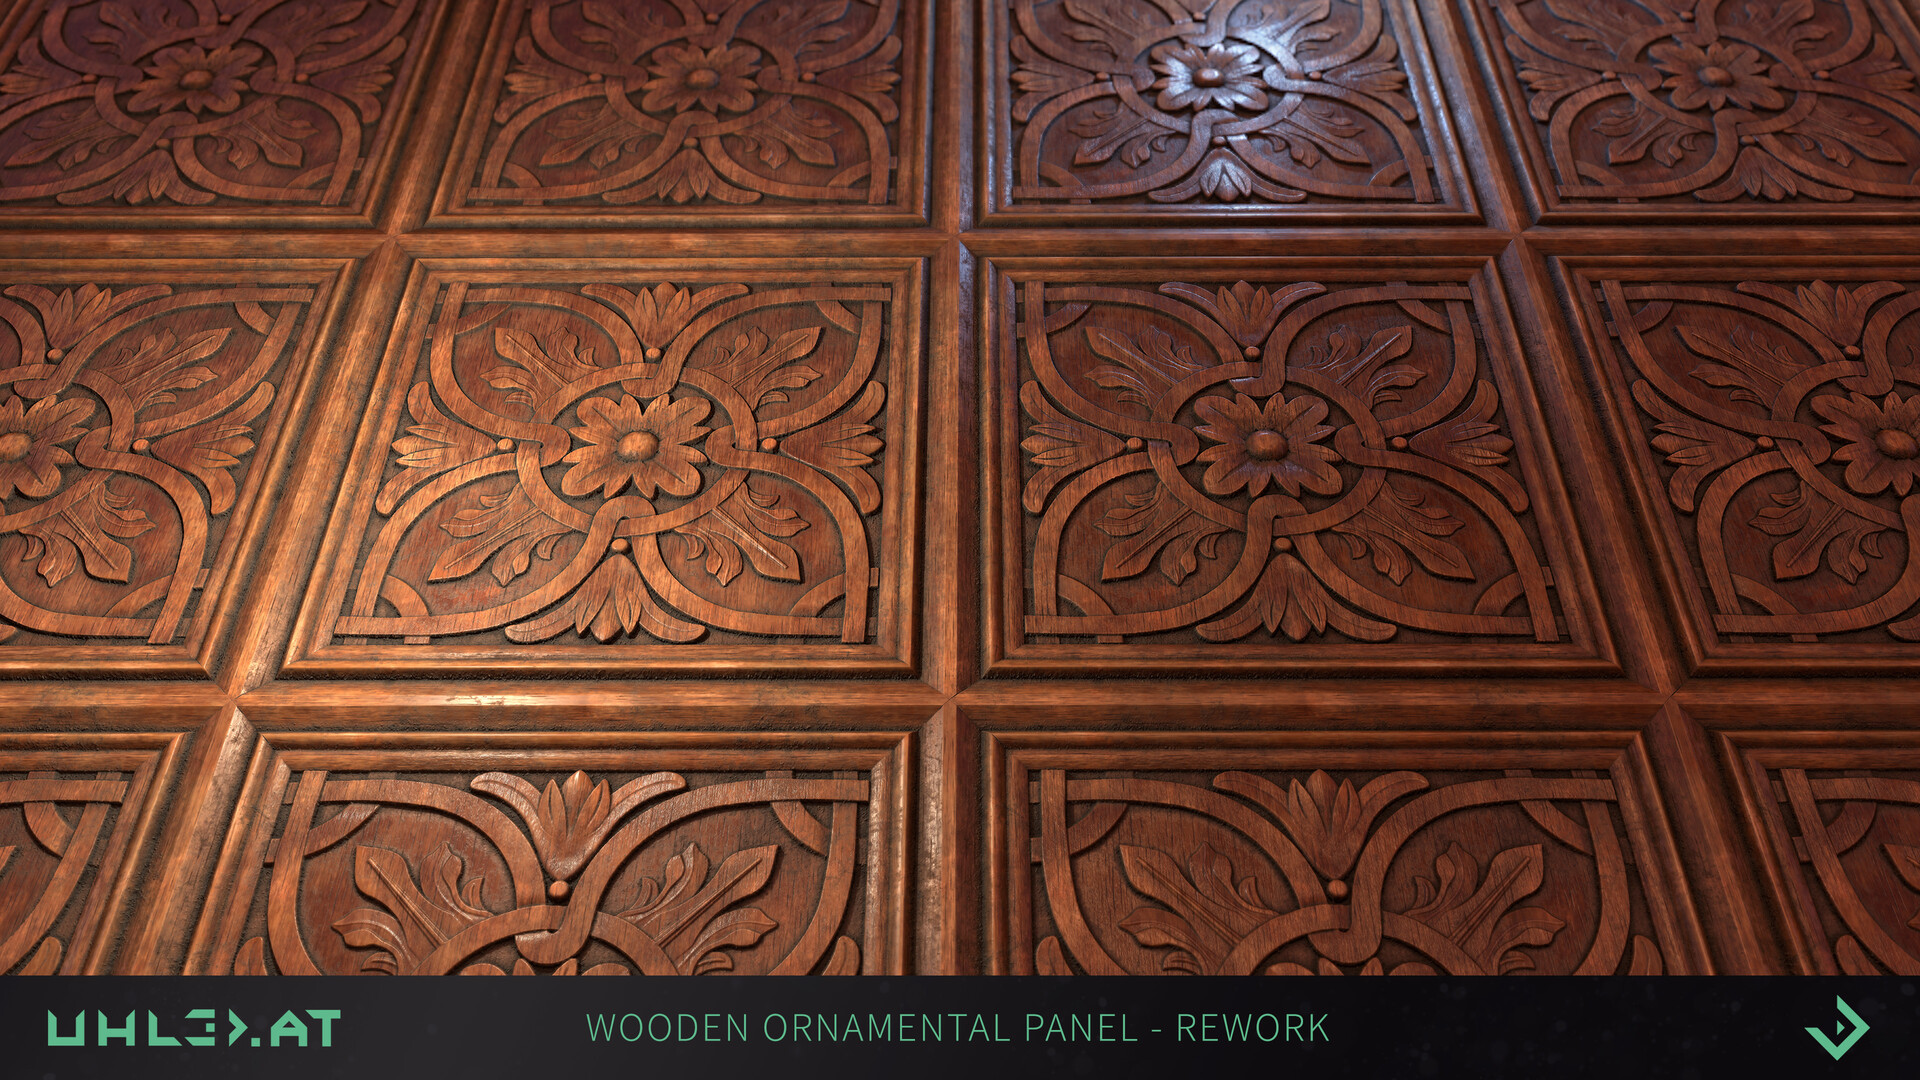 Dominik uhl wood panel ornament rework 03